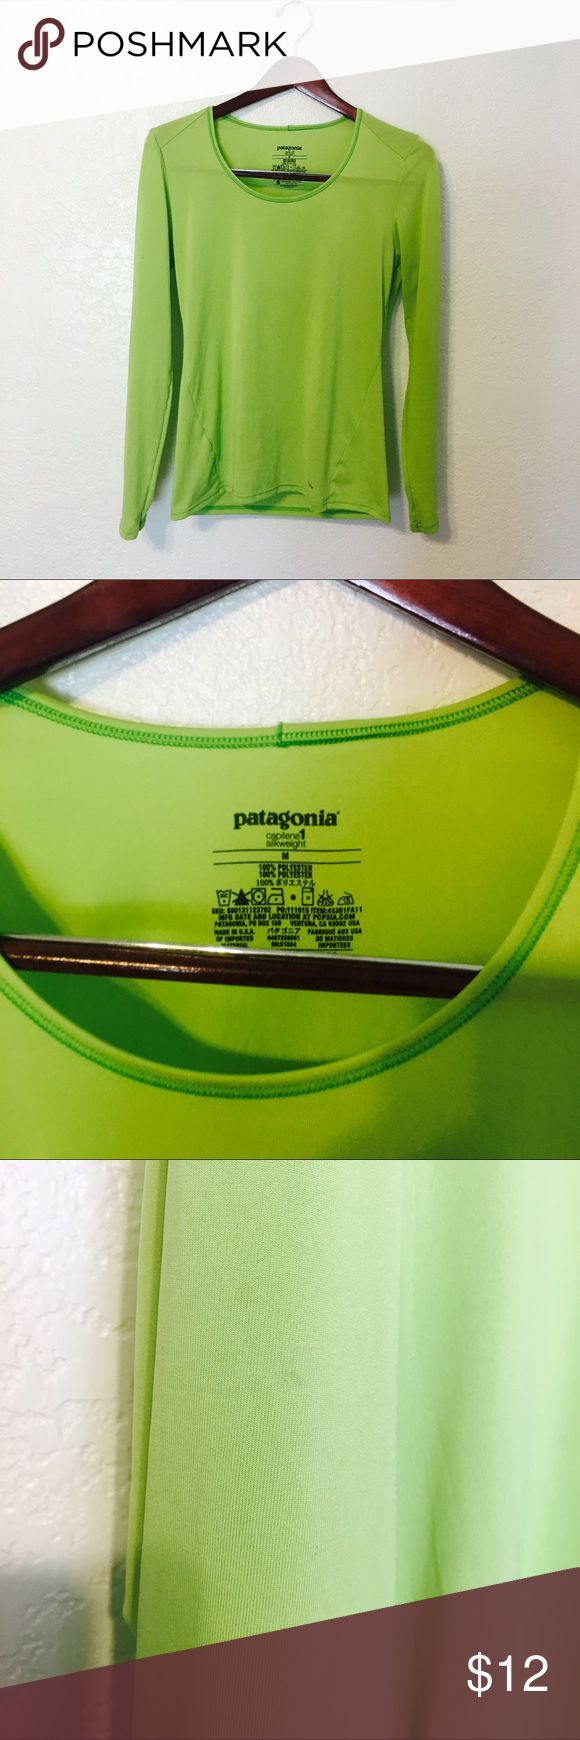 Patagonia shirt Moisture wicking Patagonia long sleeve shirt. Size medium. A few small spots that are hardly noticeable. Price is reflected Patagonia Tops